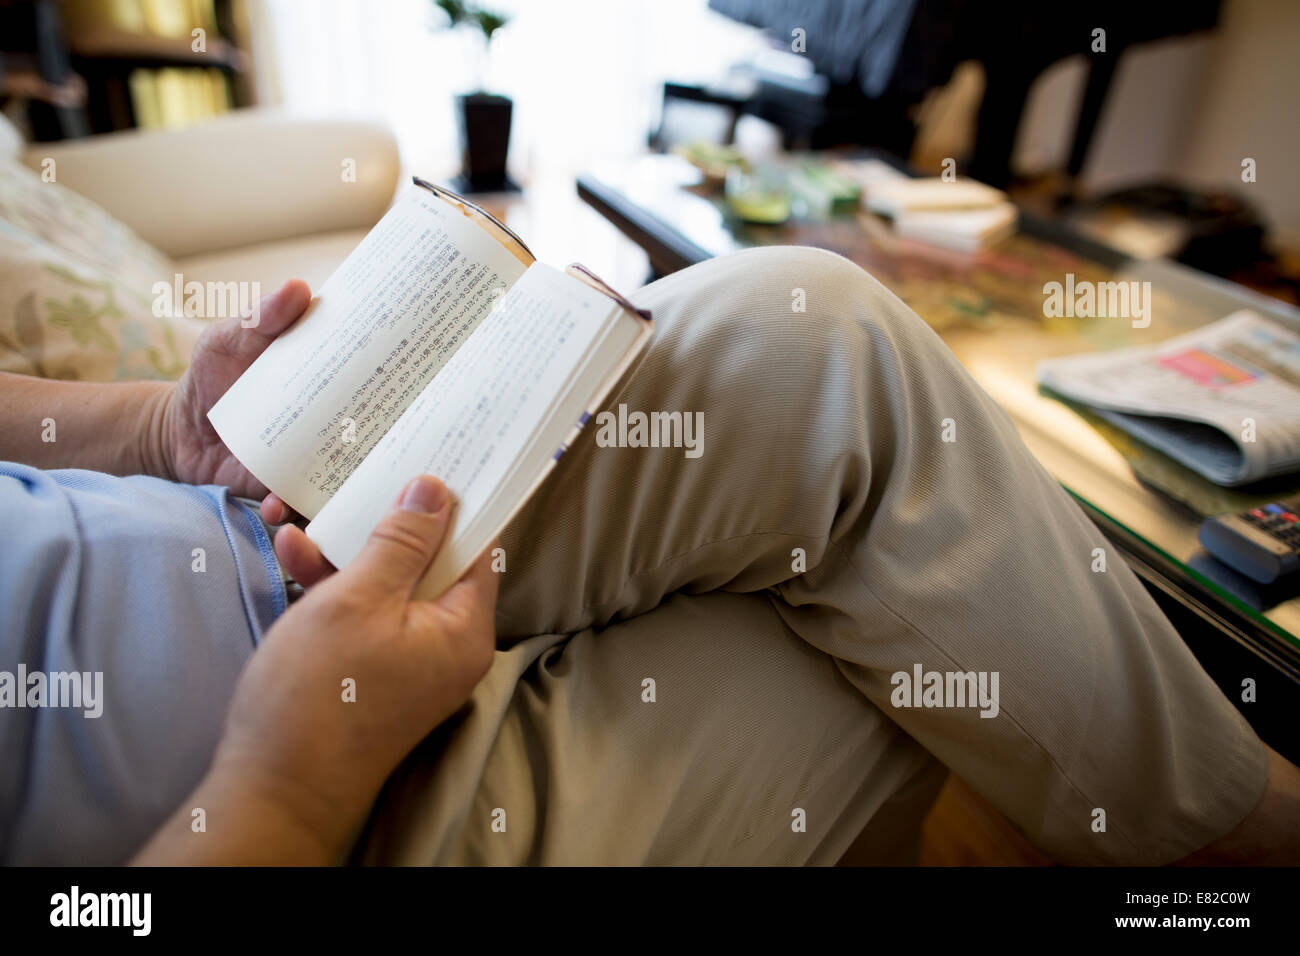 Man sitting on sofa reading a book. - Stock Image